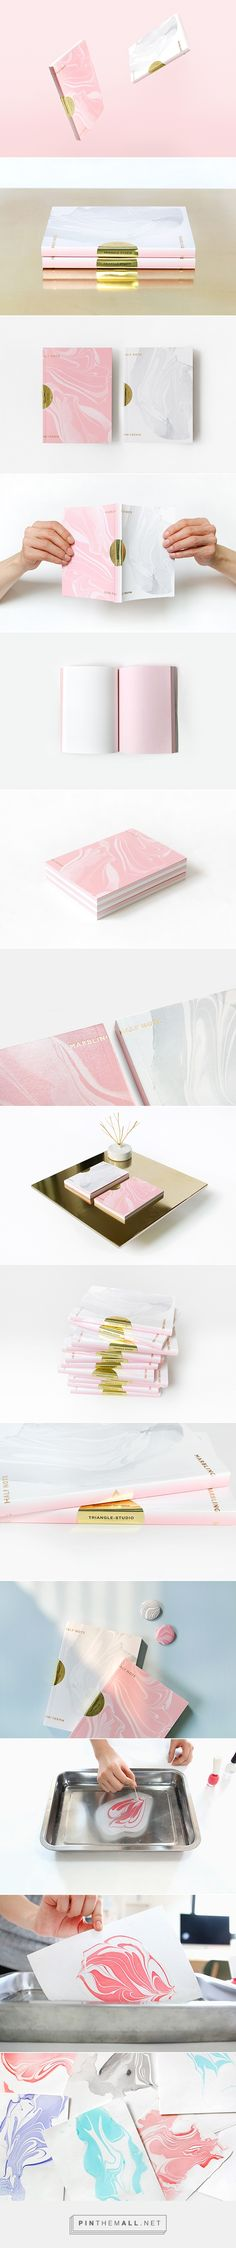 Modern , feminine , Chic branding.  Marbled Gold, rose gold and corinthian marble. I'm in love with this!